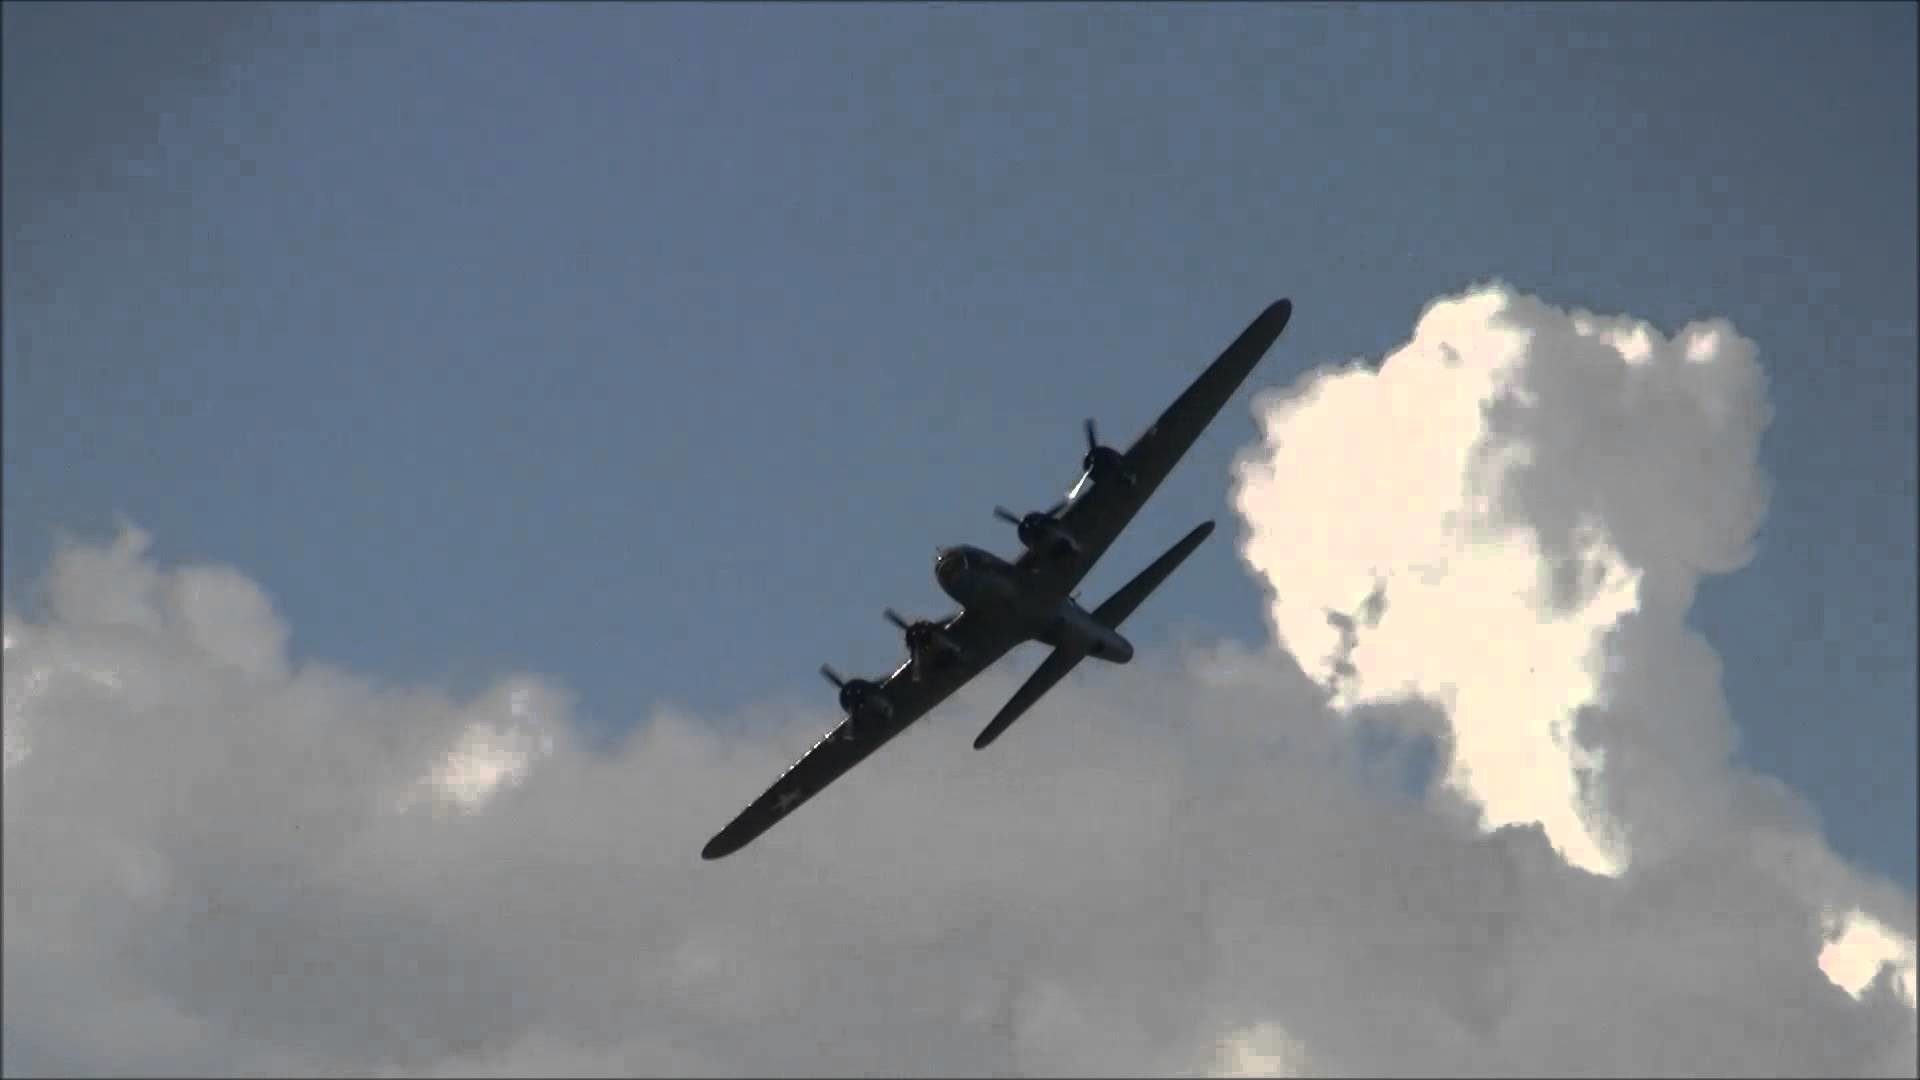 Boeing B-17 Flying Fortress display